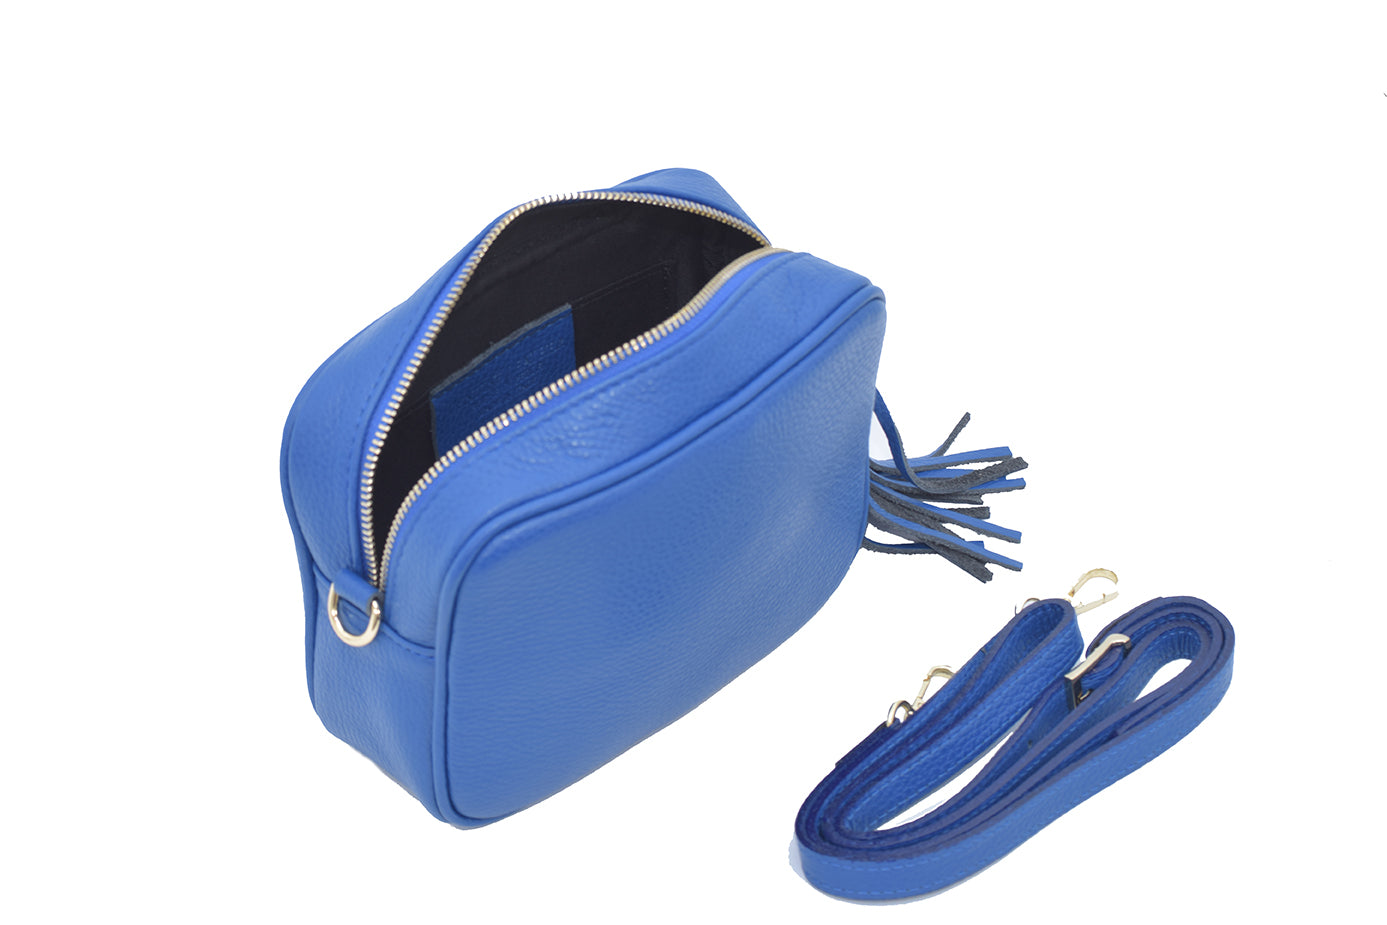 Blue real soft leather compact cross body bag with leather tassel attached to zipper closure